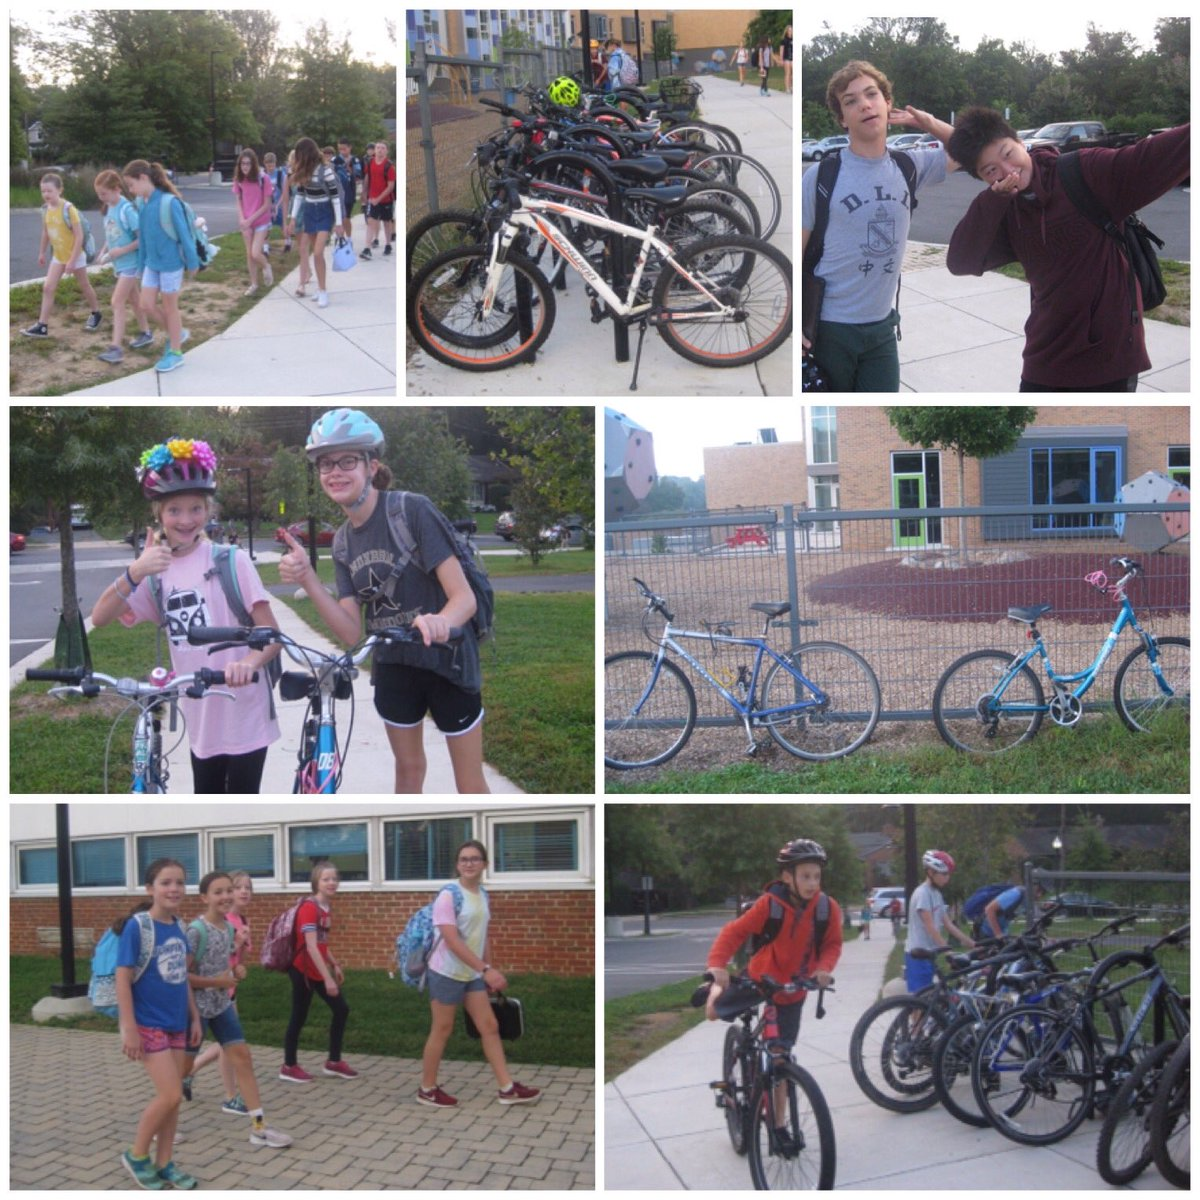 2 feet -- 2 wheels -- all good! WMS students Walk &amp; Bike to School. Getting fit and helping the environment, all before 8am. <a target='_blank' href='http://search.twitter.com/search?q=WMSwolf'><a target='_blank' href='https://twitter.com/hashtag/WMSwolf?src=hash'>#WMSwolf</a></a> <a target='_blank' href='http://search.twitter.com/search?q=APSWalk2SchoolDay'><a target='_blank' href='https://twitter.com/hashtag/APSWalk2SchoolDay?src=hash'>#APSWalk2SchoolDay</a></a> <a target='_blank' href='http://search.twitter.com/search?q=WeCan'><a target='_blank' href='https://twitter.com/hashtag/WeCan?src=hash'>#WeCan</a></a> <a target='_blank' href='https://t.co/gTe1rEXw5f'>https://t.co/gTe1rEXw5f</a>